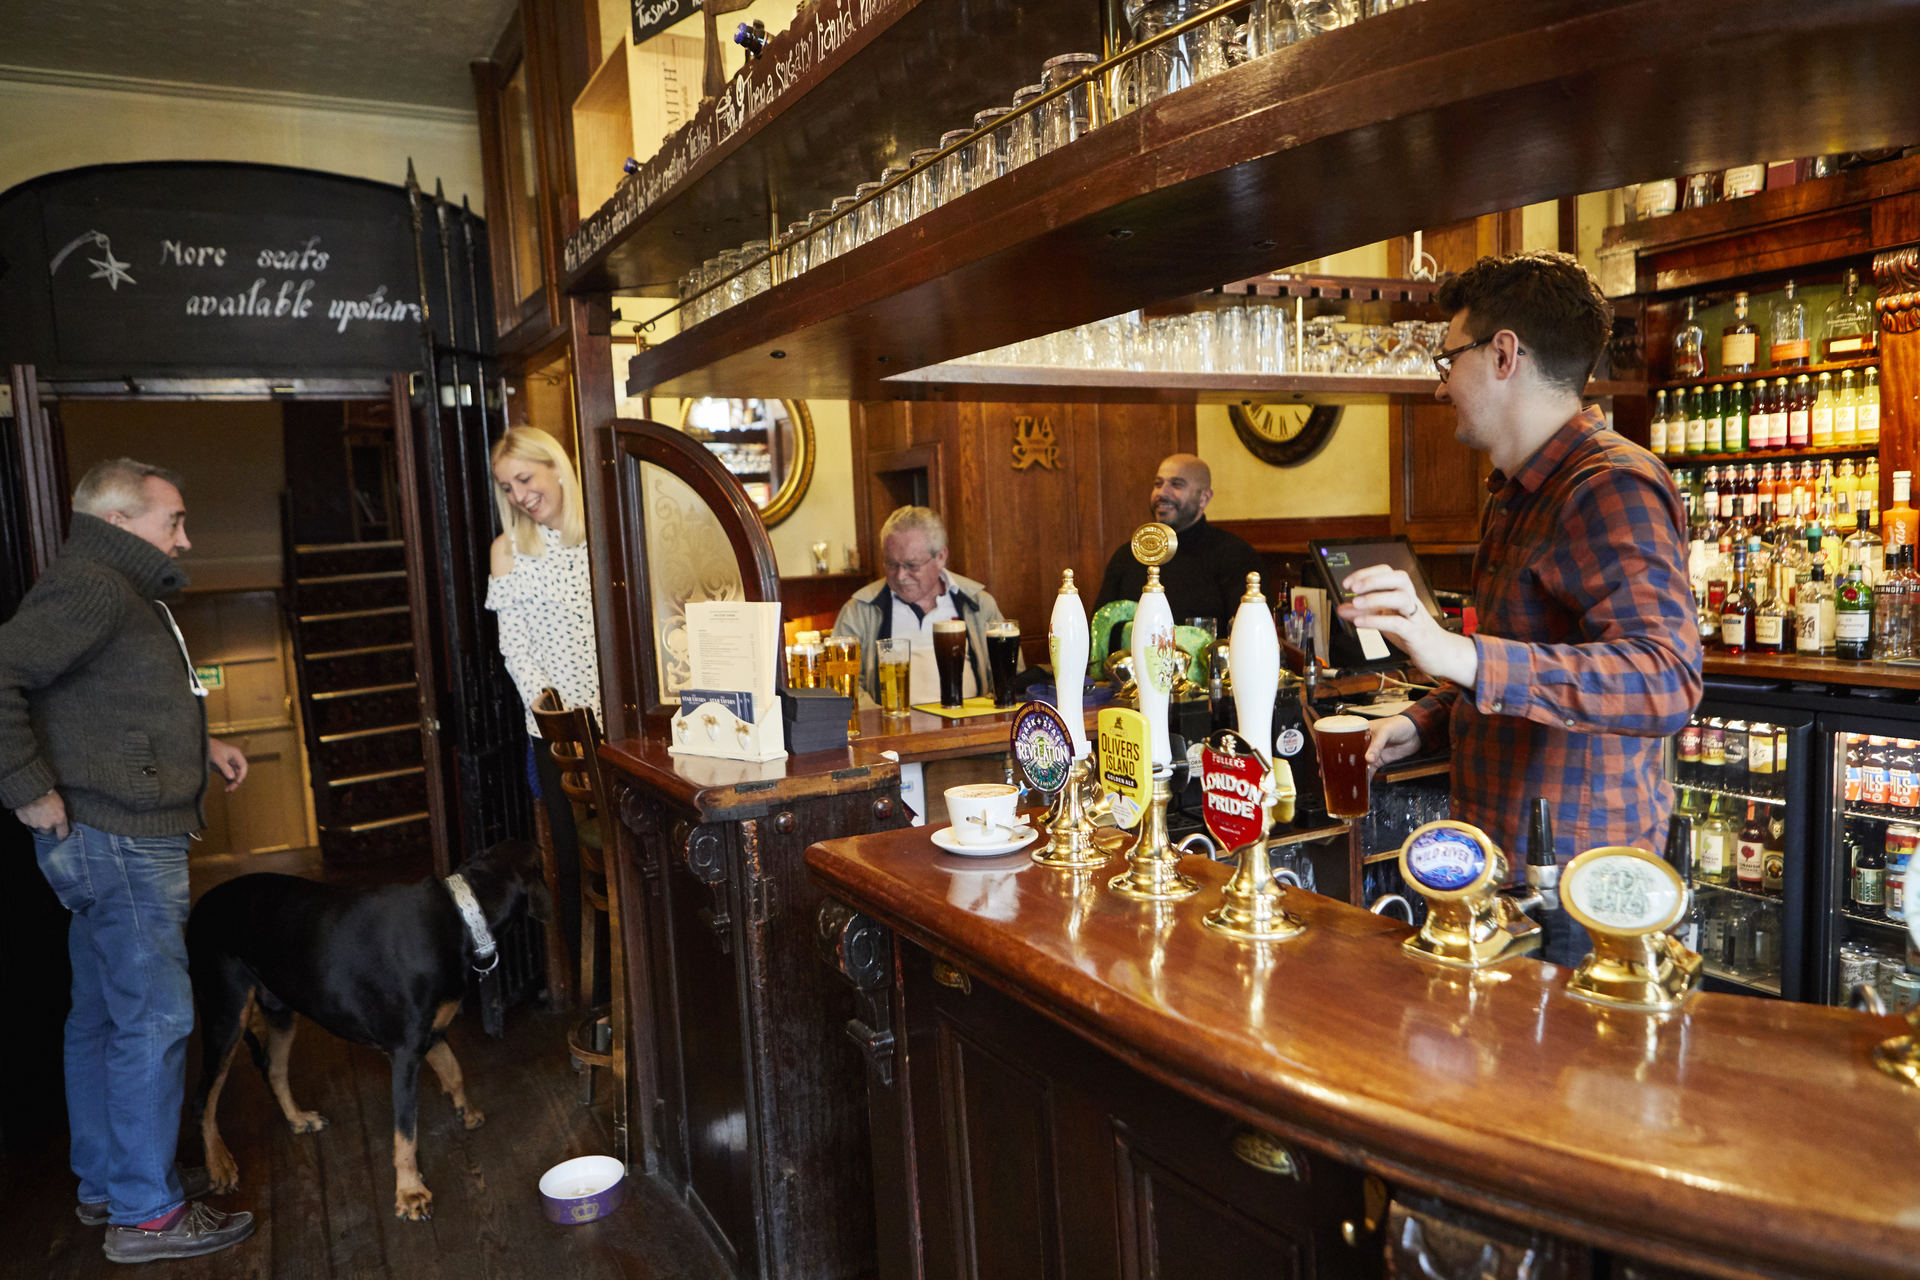 View the Gallery of The Star Tavern Pub and Restaurant